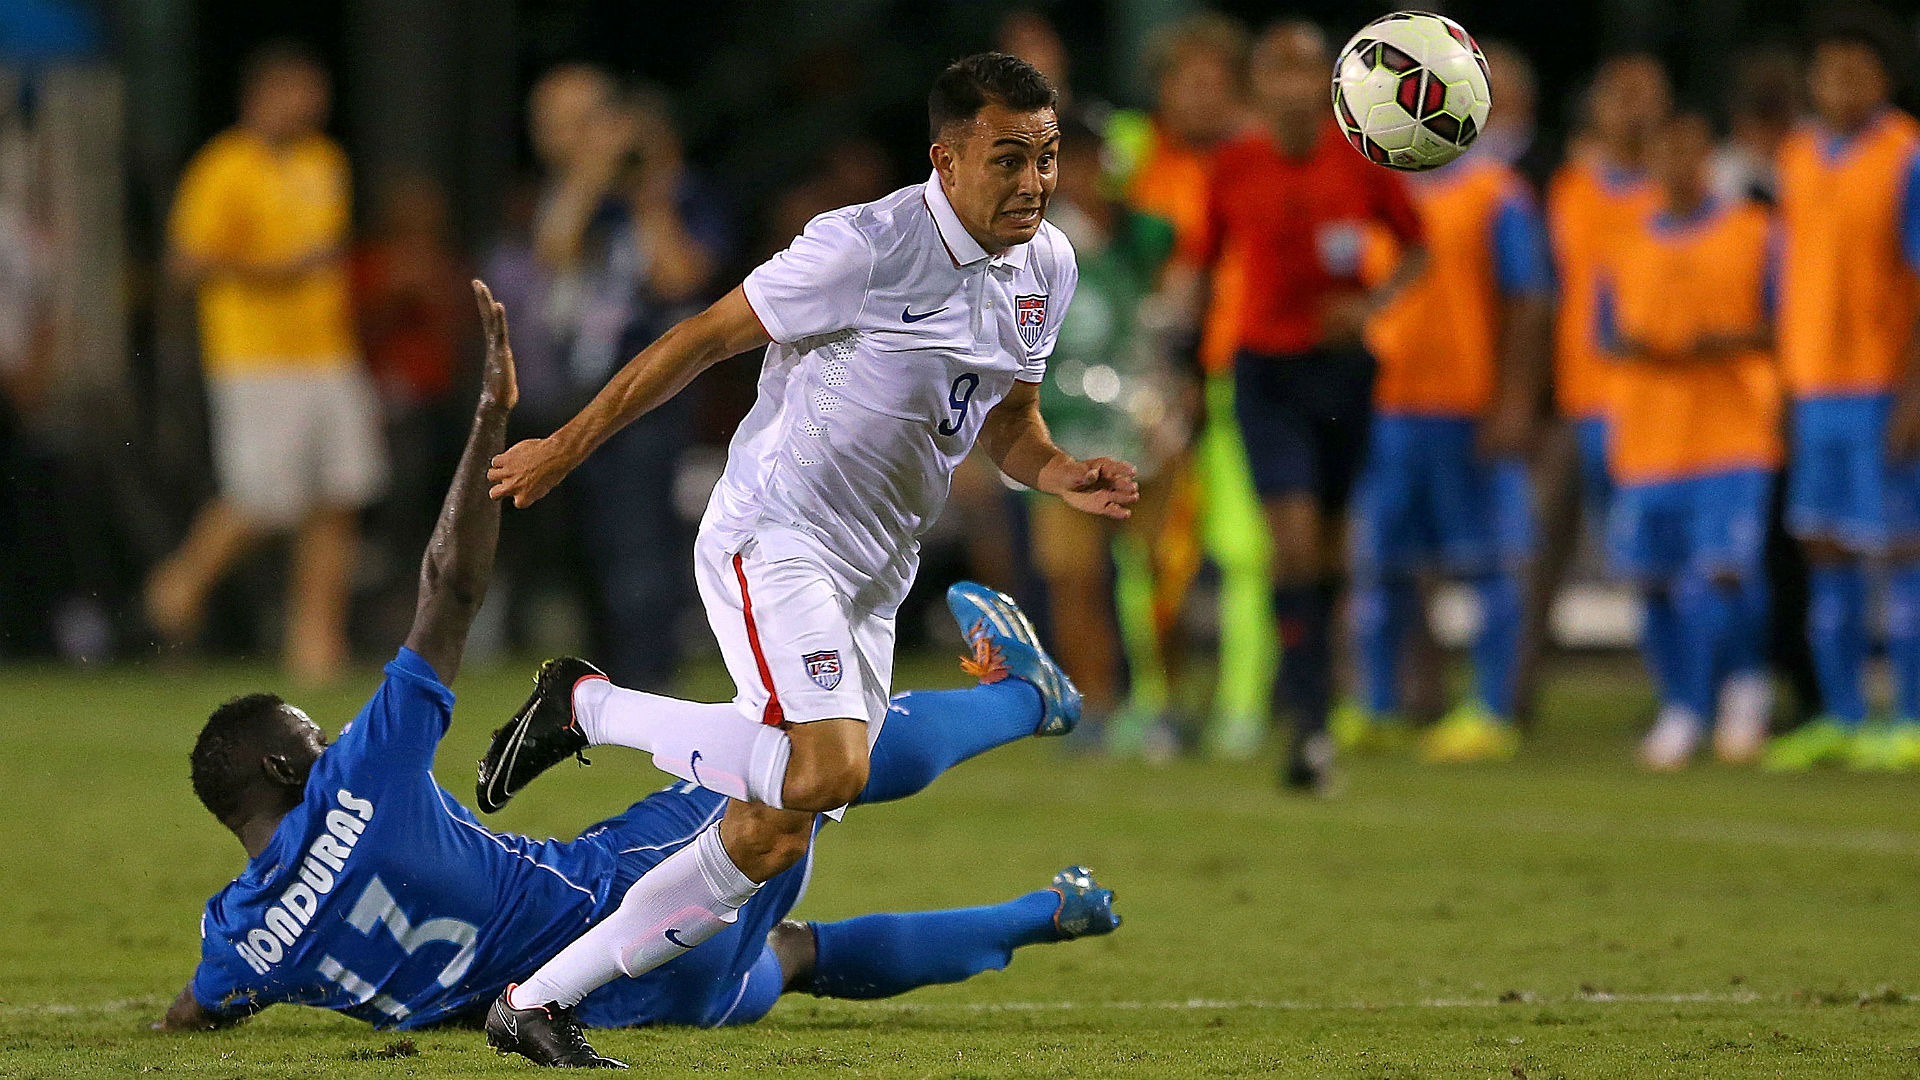 USA vs. Colombia betting preview and pick – Both sides ready for rematch after previous draw